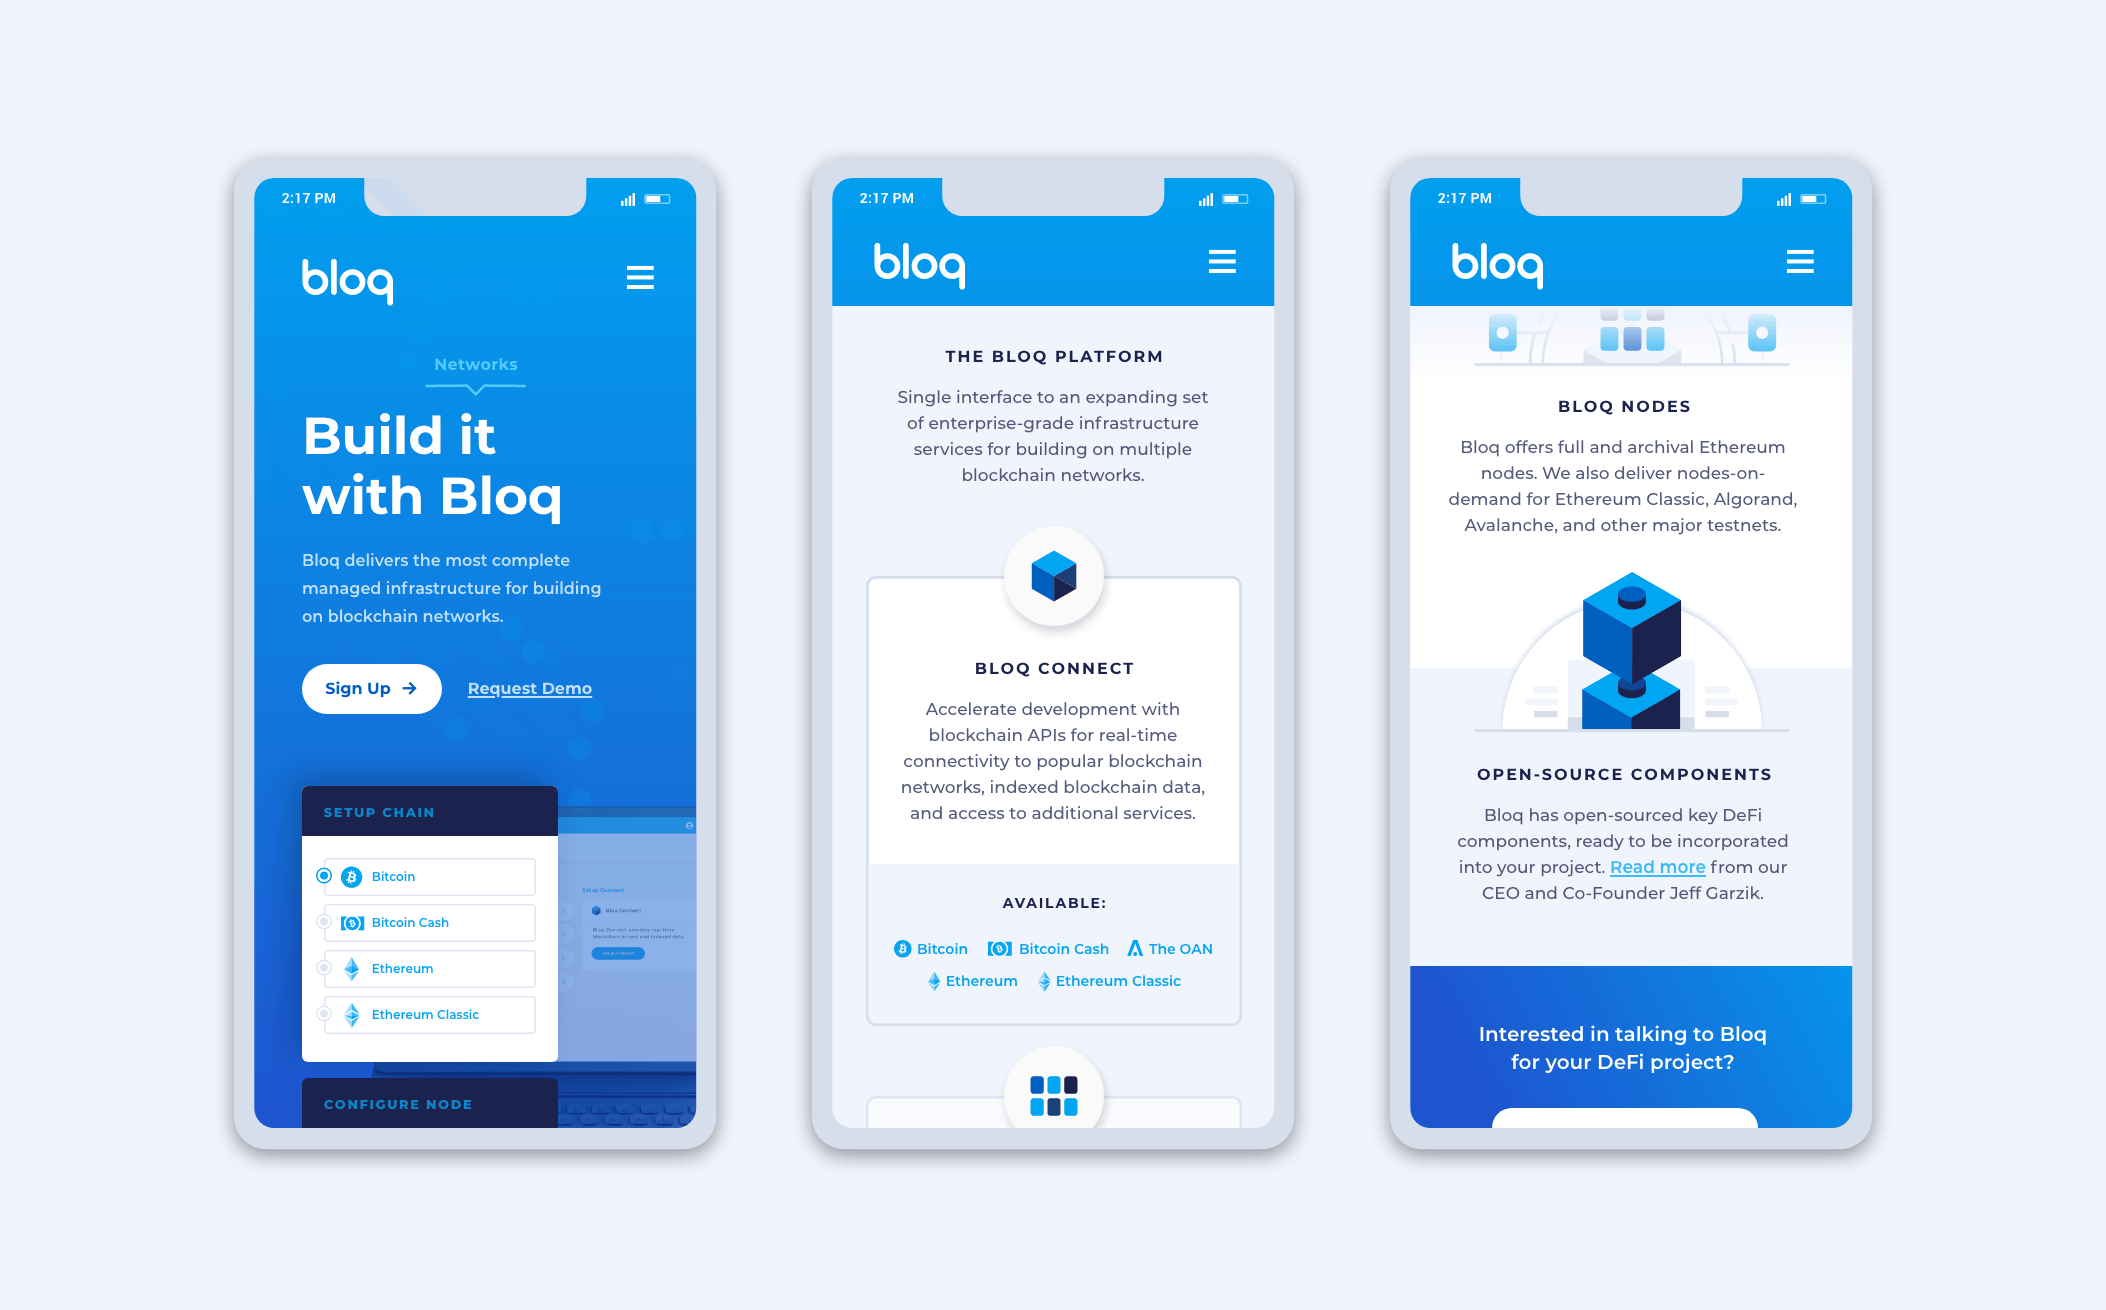 bloq mobile website previews